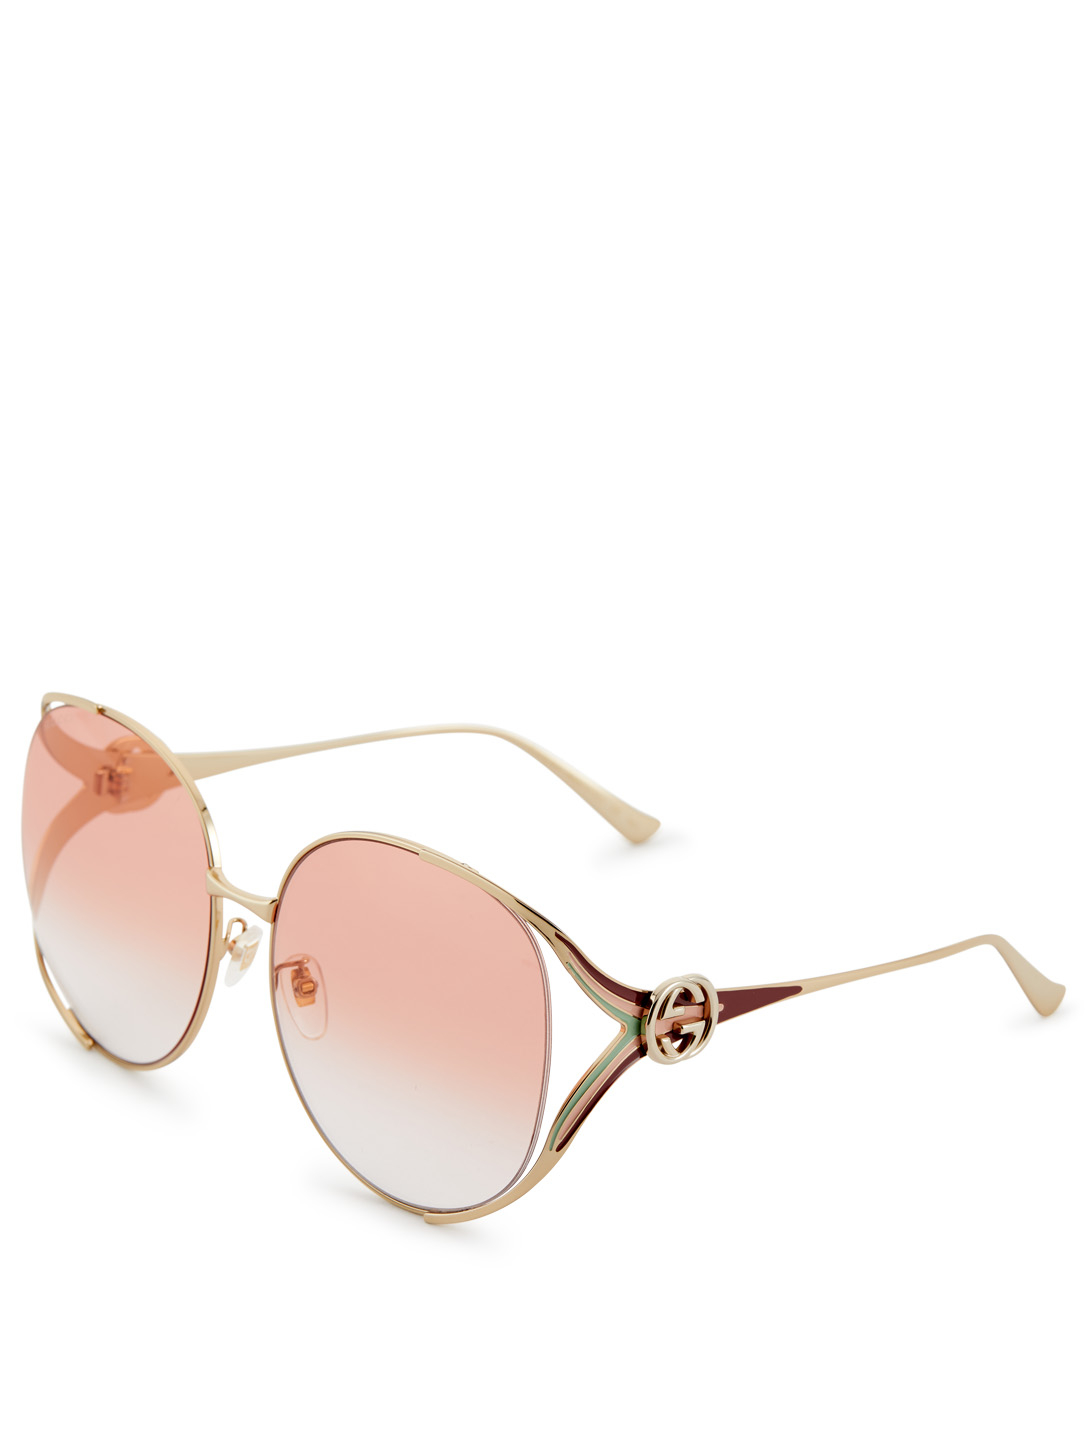 GUCCI Round Sunglasses With Web Women's Pink